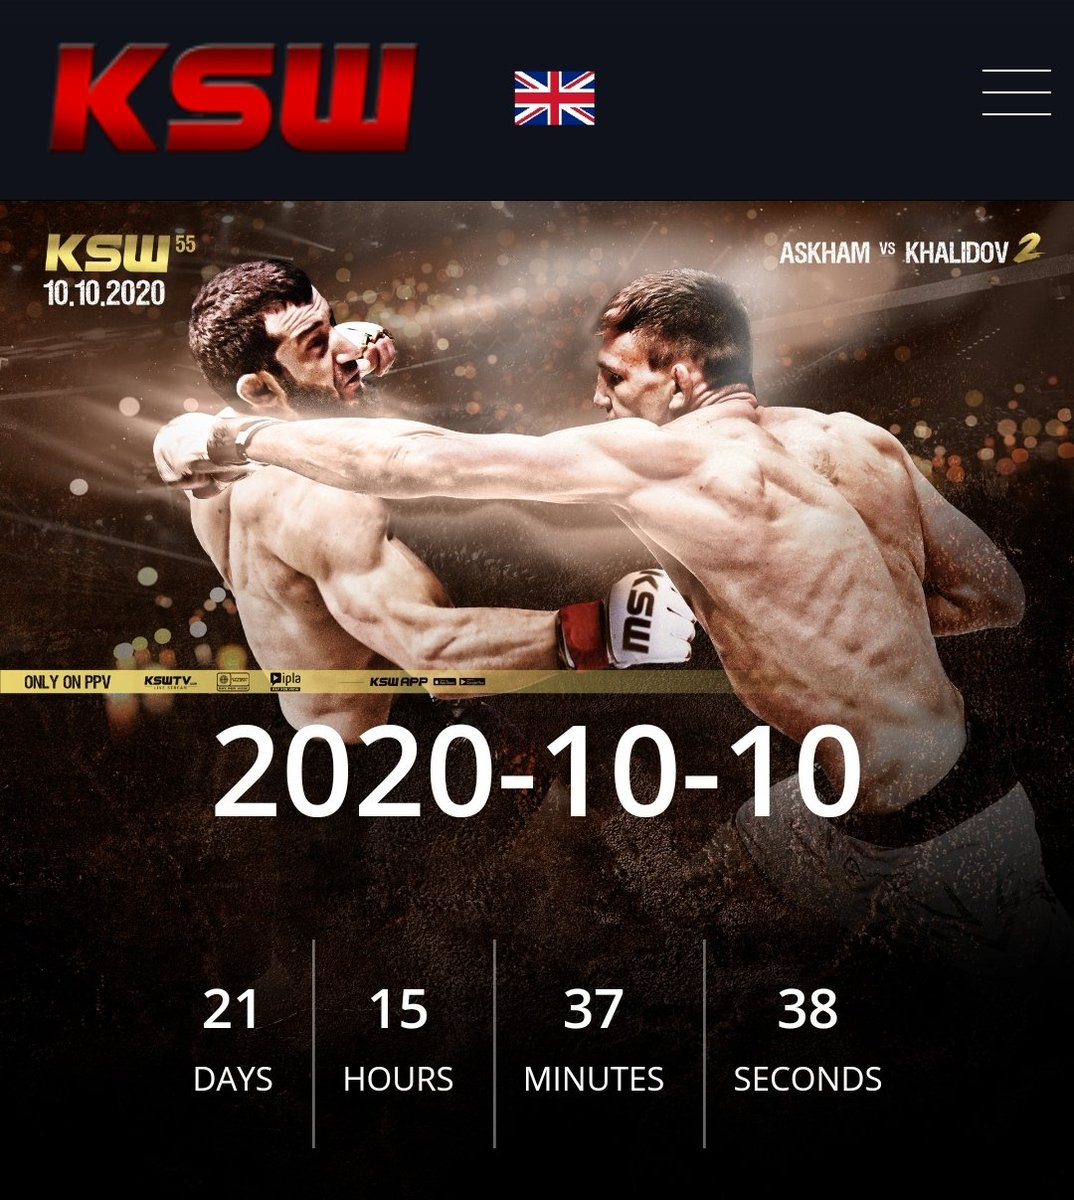 3 weeks and back to my homeland for @KSW_MMA https://t.co/0zuQ4MR69Q